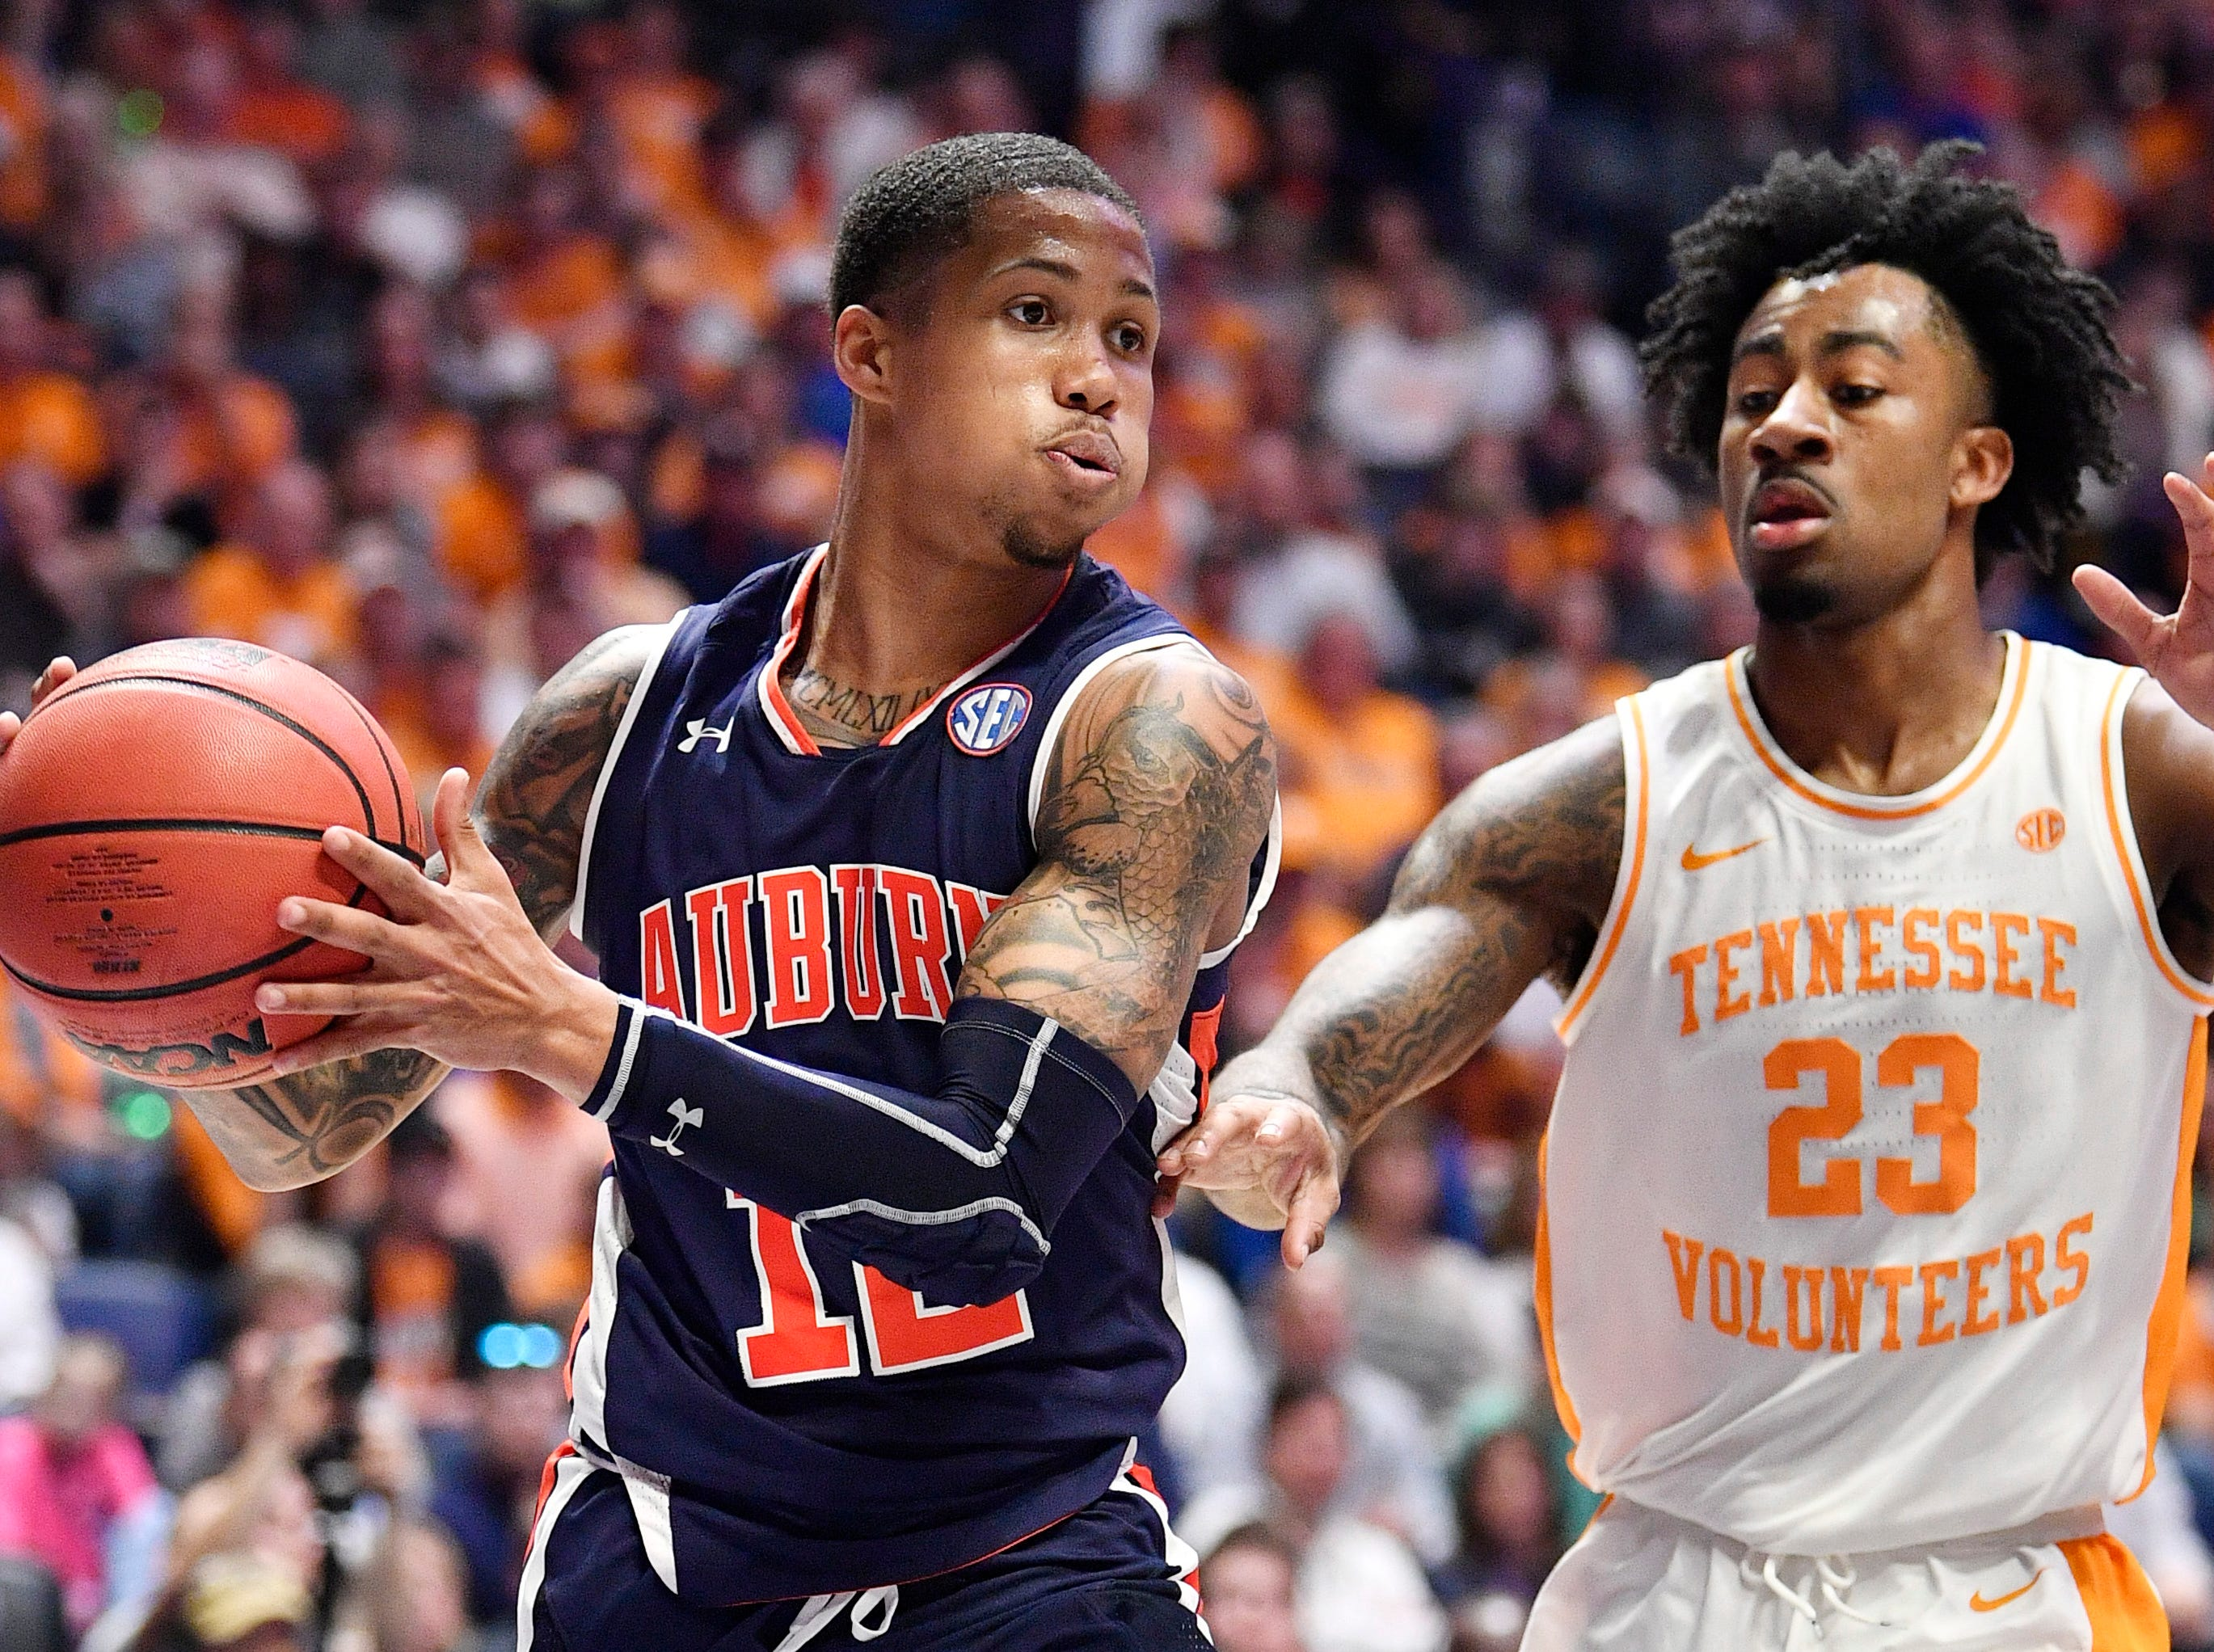 Auburn guard J'Von McCormick (12) moves the ball defended by Tennessee guard Jordan Bowden (23) during the first half of the SEC Men's Basketball Tournament championship game at Bridgestone Arena in Nashville, Tenn., Sunday, March 17, 2019.